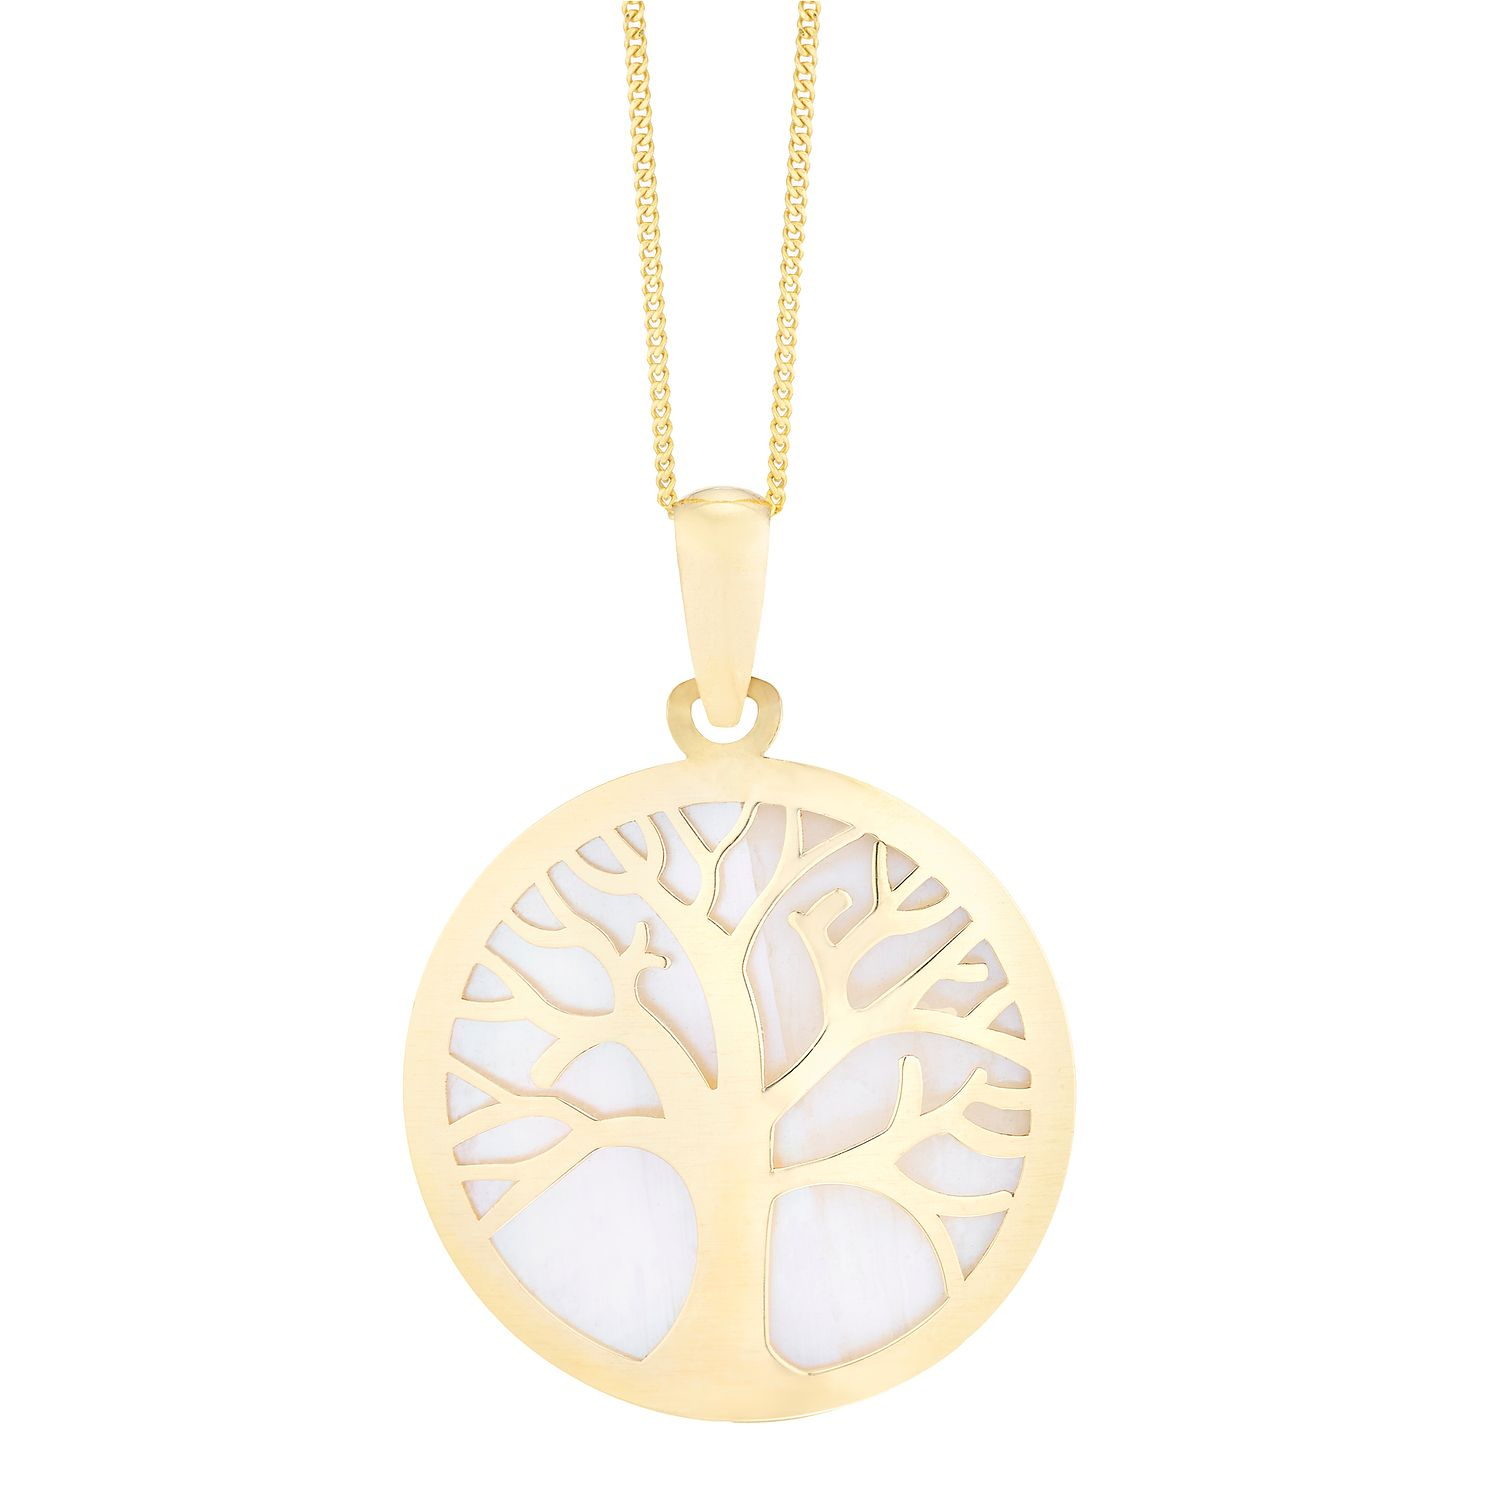 9ct Yellow Gold Tree of Life Design Pendant - Product number 8111154